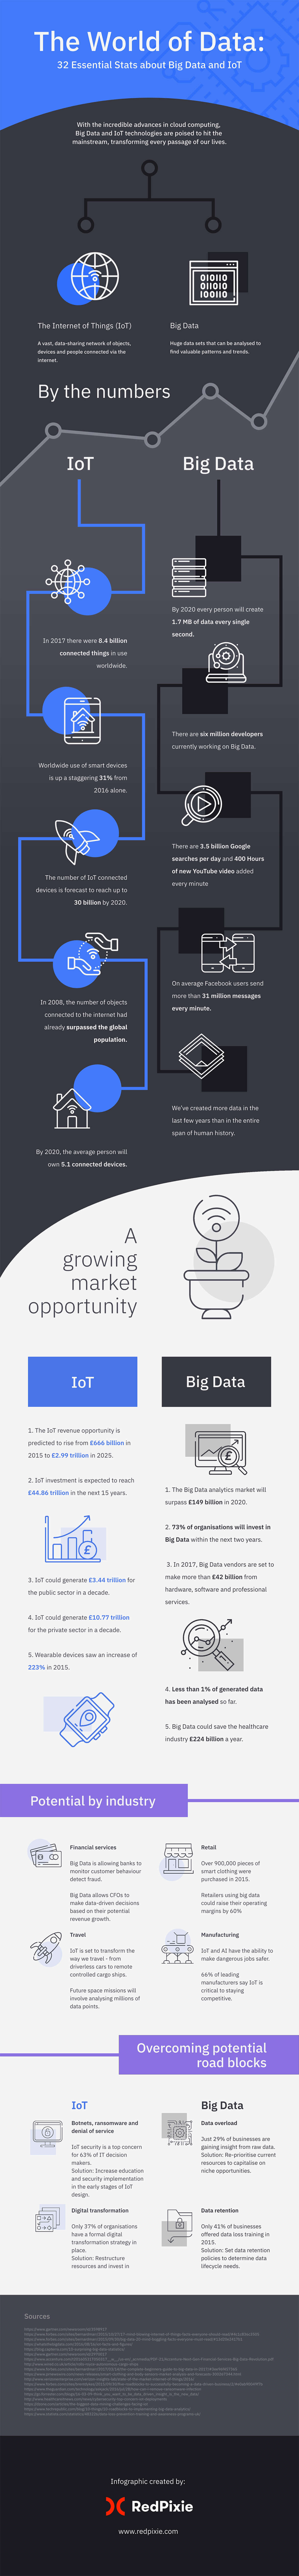 iot and big data infographic